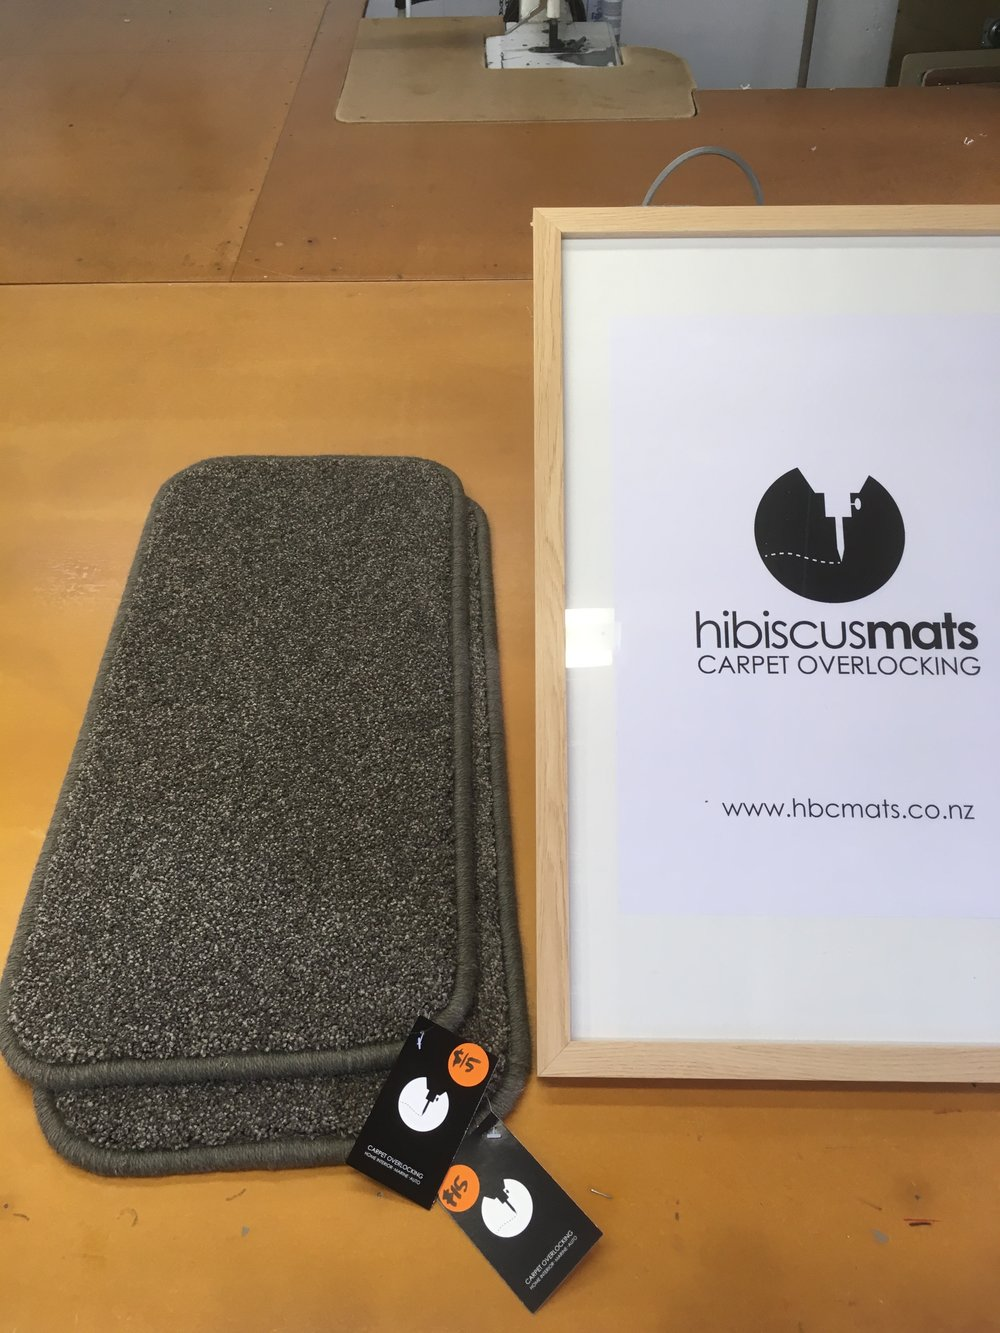 Carpet Mat 0.65m x 0.30m by Hibiscus Mats Carpet Overlocking $15 - Solution dyed nylon carpet mat cut & overlocked by Hibiscus Mats Carpet Overlocking. - Measures 0.65m x 0.30m- Colour: Charcoal Grey- Rounded corners to prevent curling- Can be gripped with Giltgrip Rug Grip for an additional fee